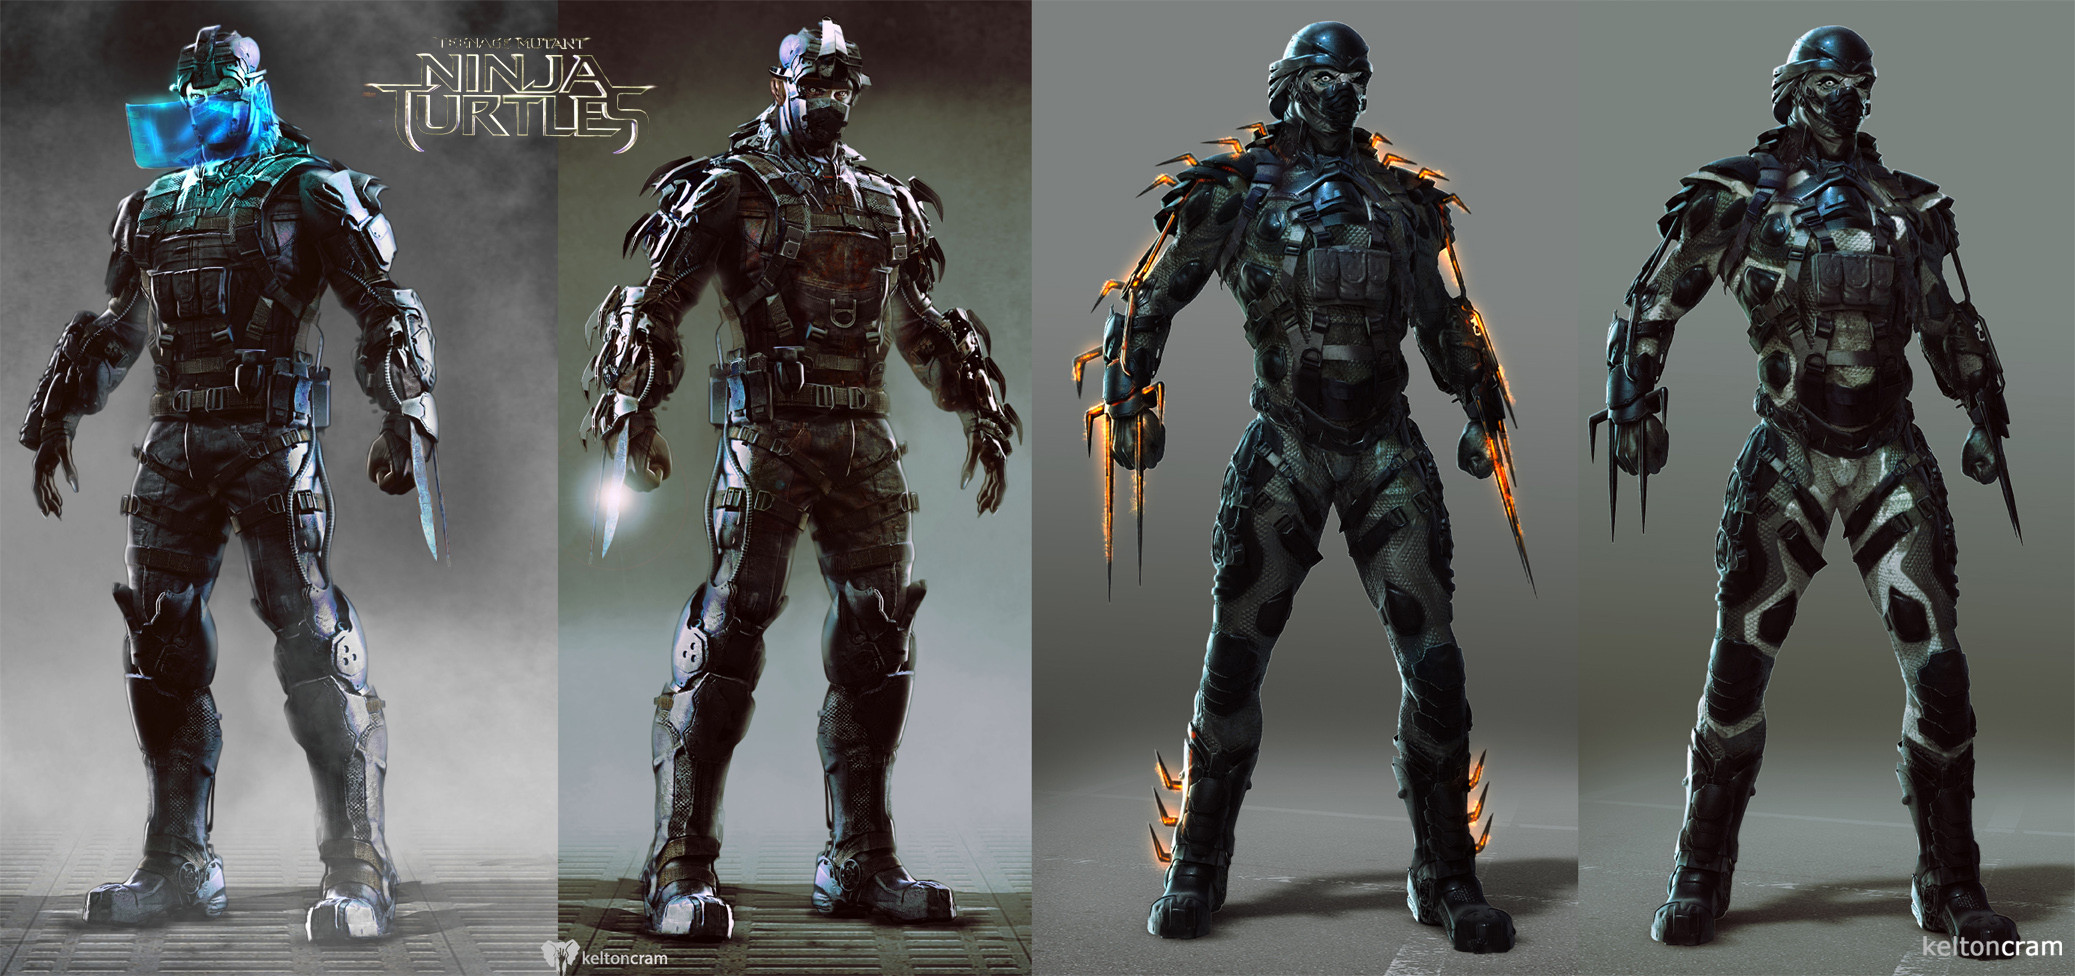 tmntcon2 See What Shredder and the Ninja Turtles Almost Looked Like In the New Movie